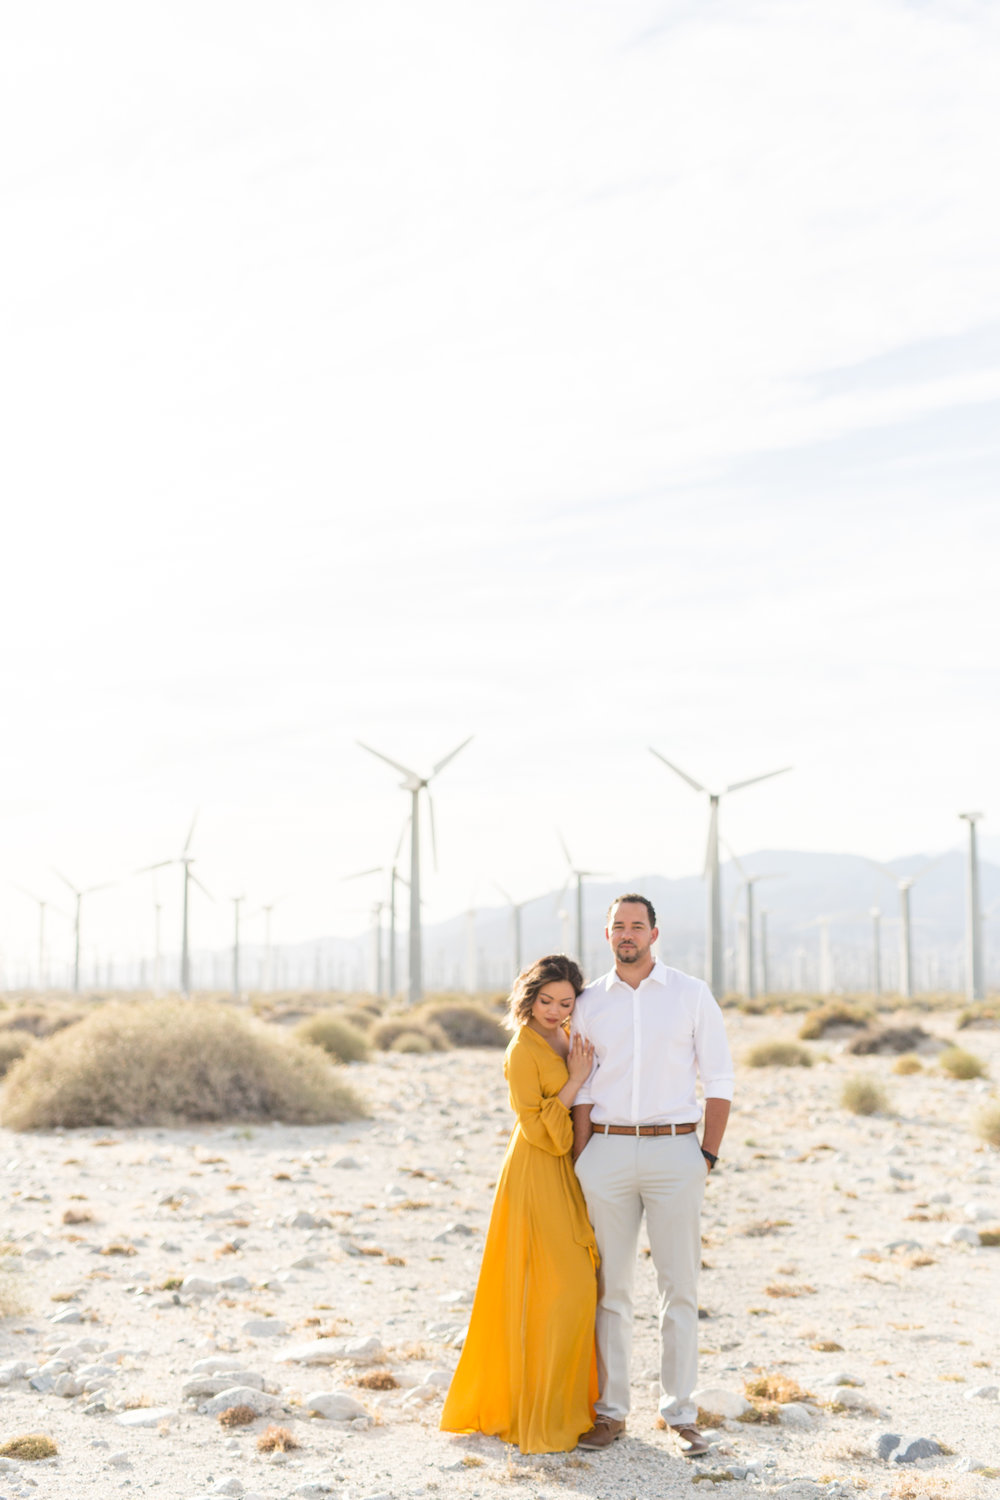 victoria + daniel - palm springs anniversary - engagement - inspiration-0032.jpg